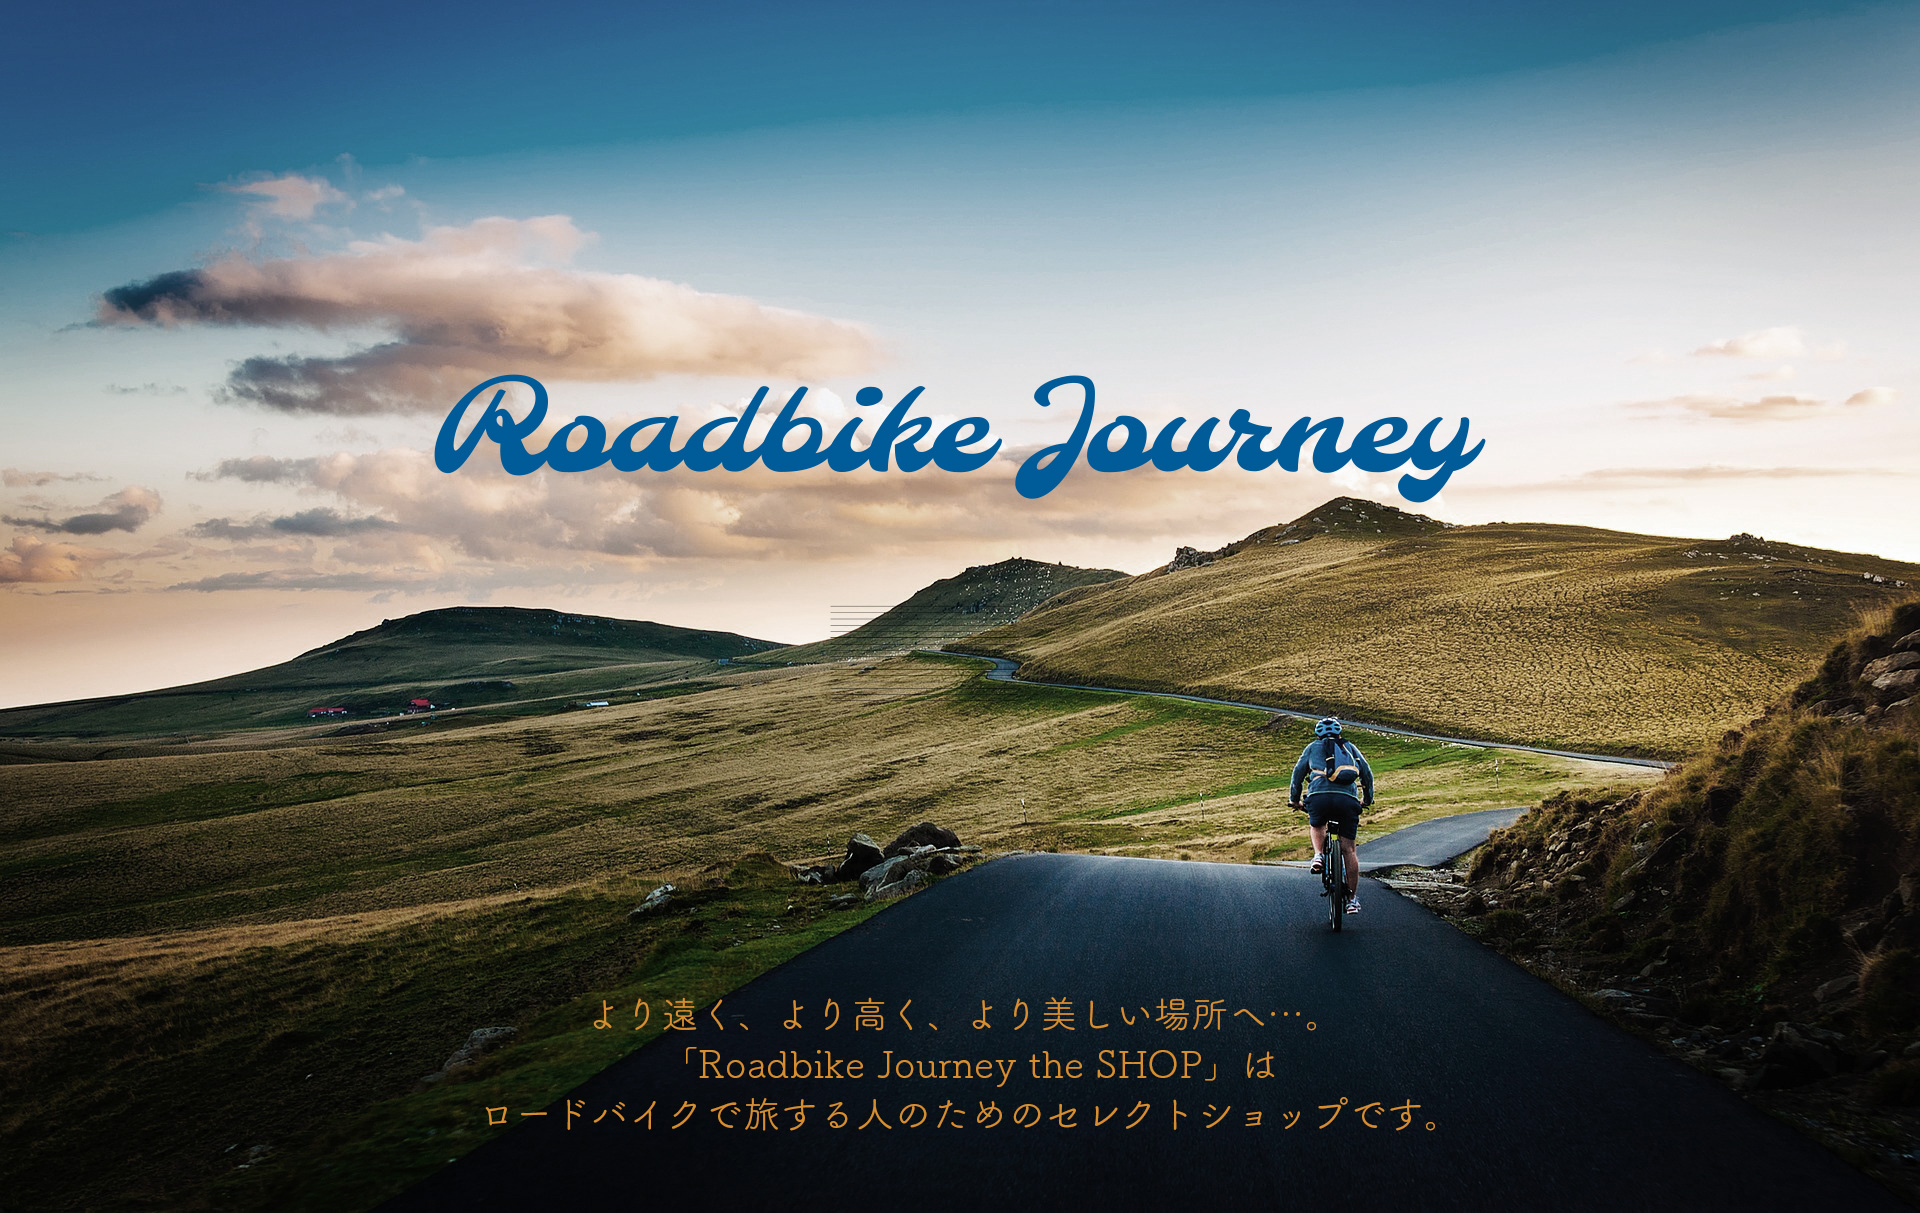 Road Bike Journey